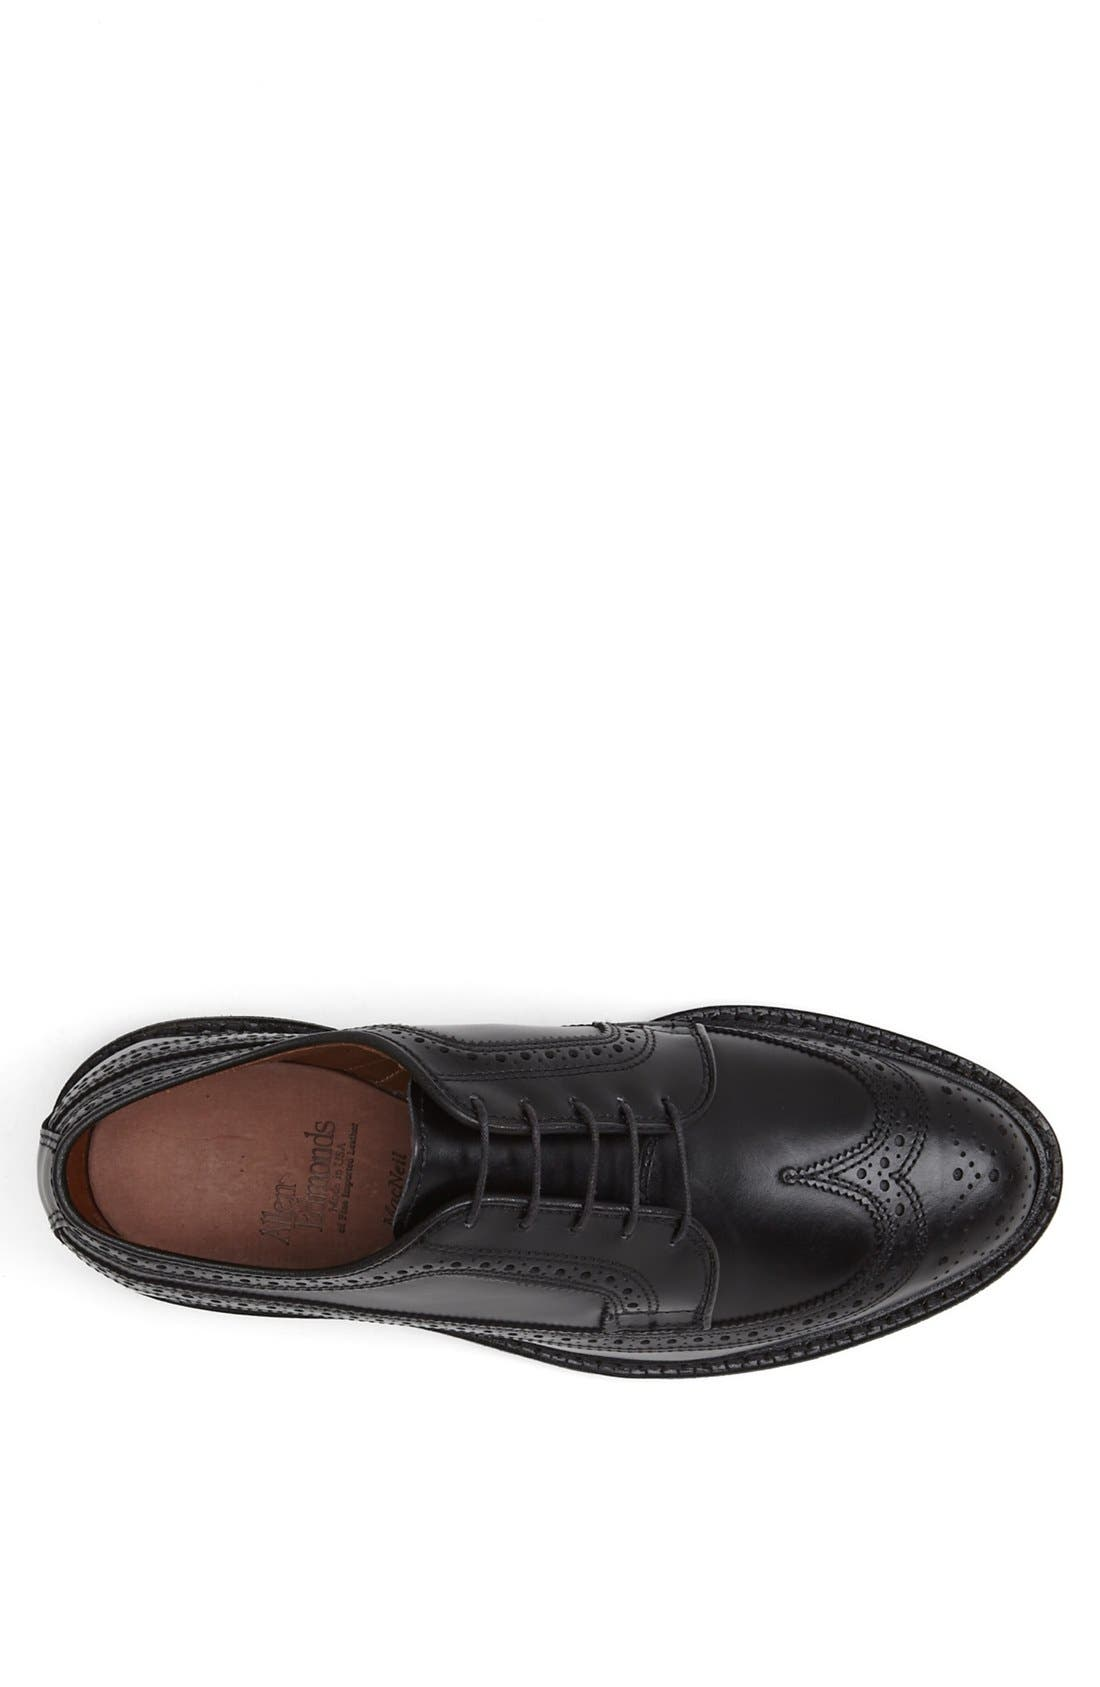 Alternate Image 3  - Allen Edmonds 'MacNeil' Oxford (Men)